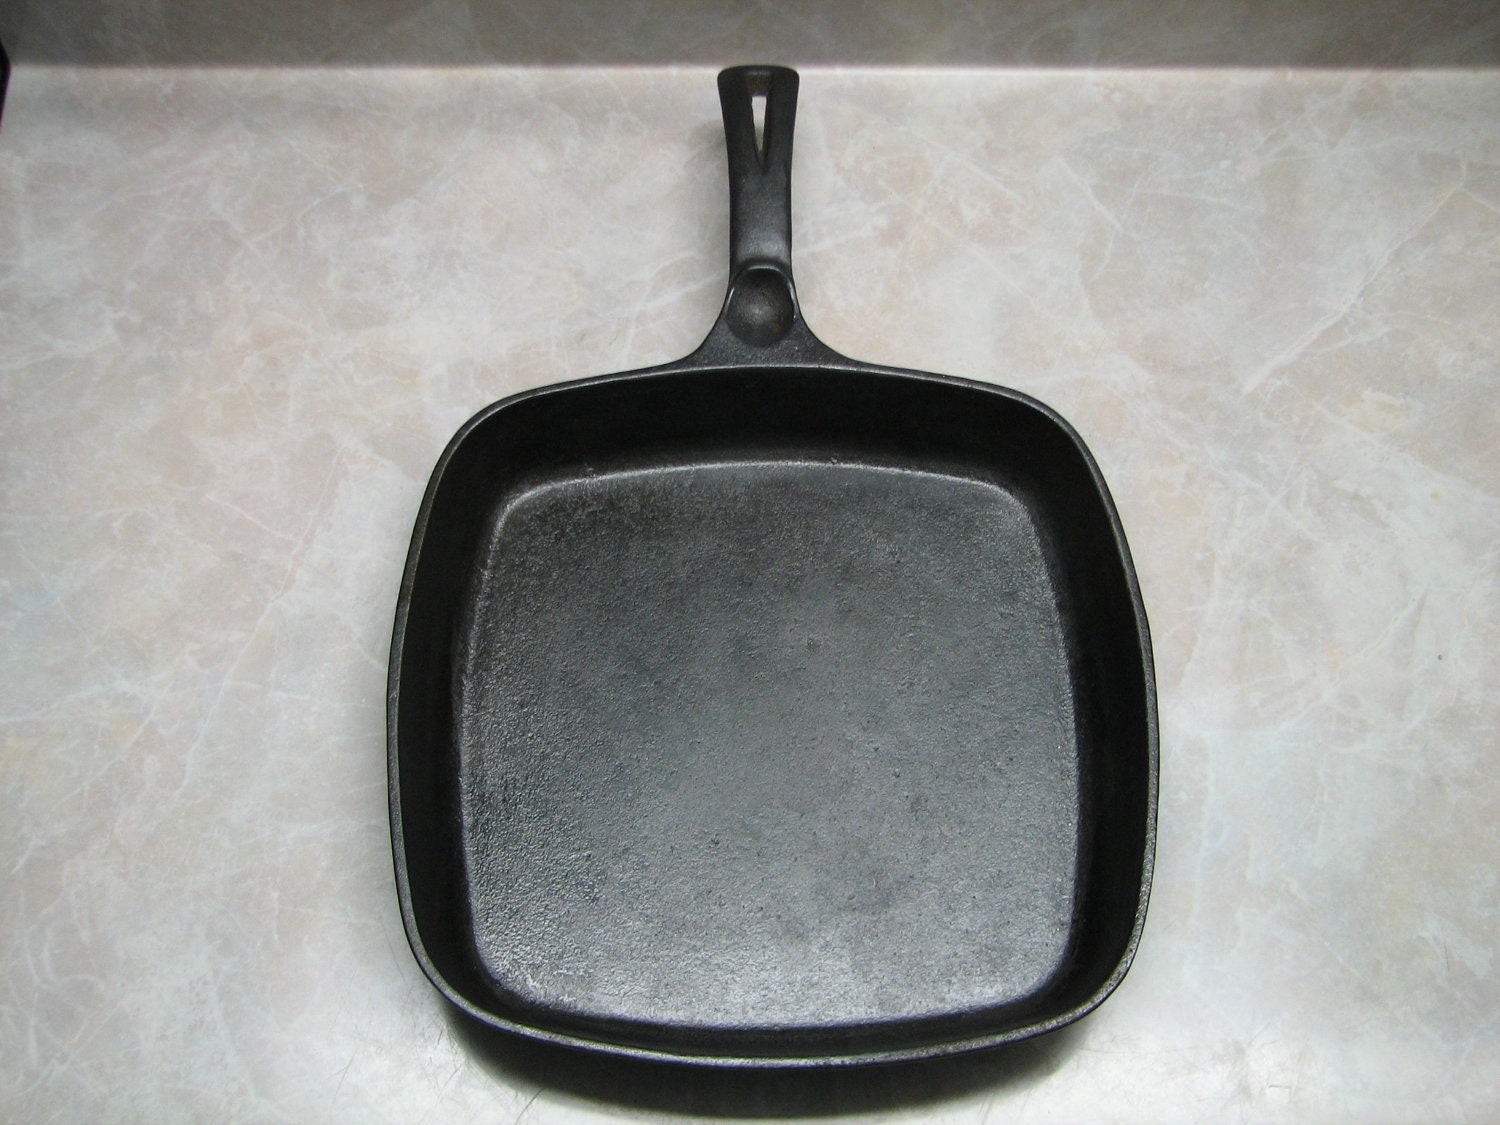 wagner sidney o cast iron square skillet by terenciostreasures. Black Bedroom Furniture Sets. Home Design Ideas